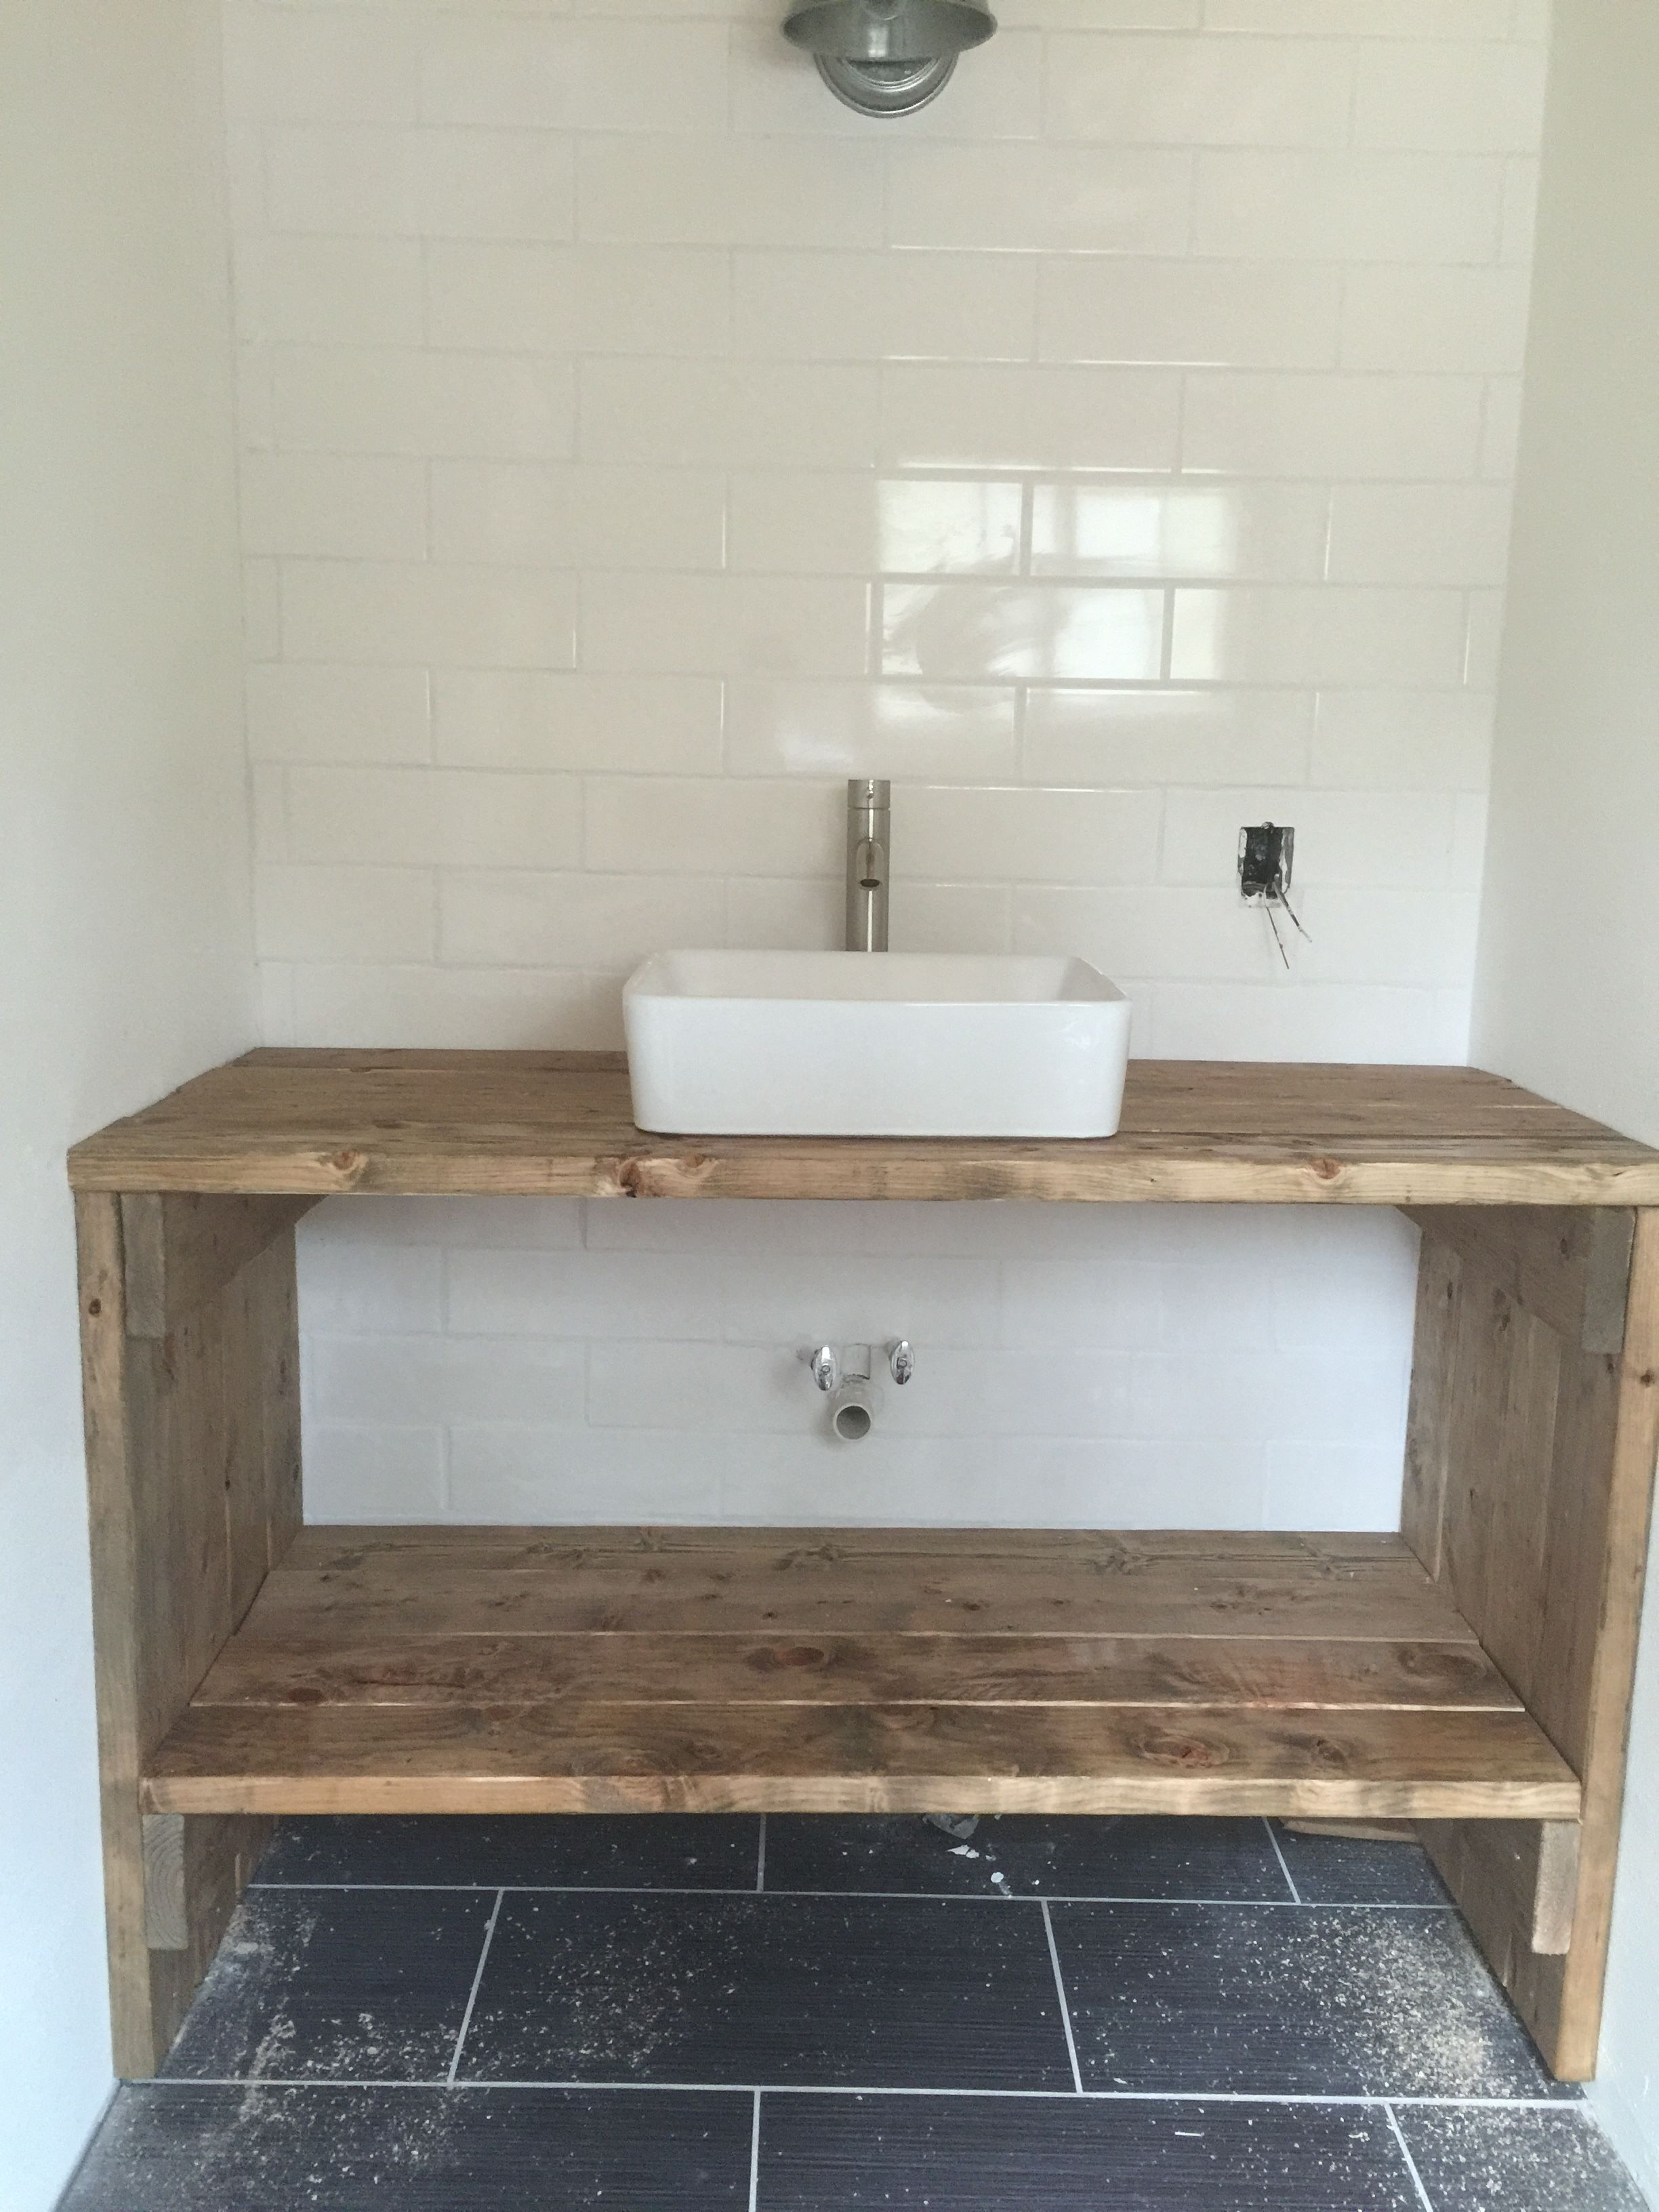 Homemade Vanity From 2x6 Boards More Diy Bathroom Vanity